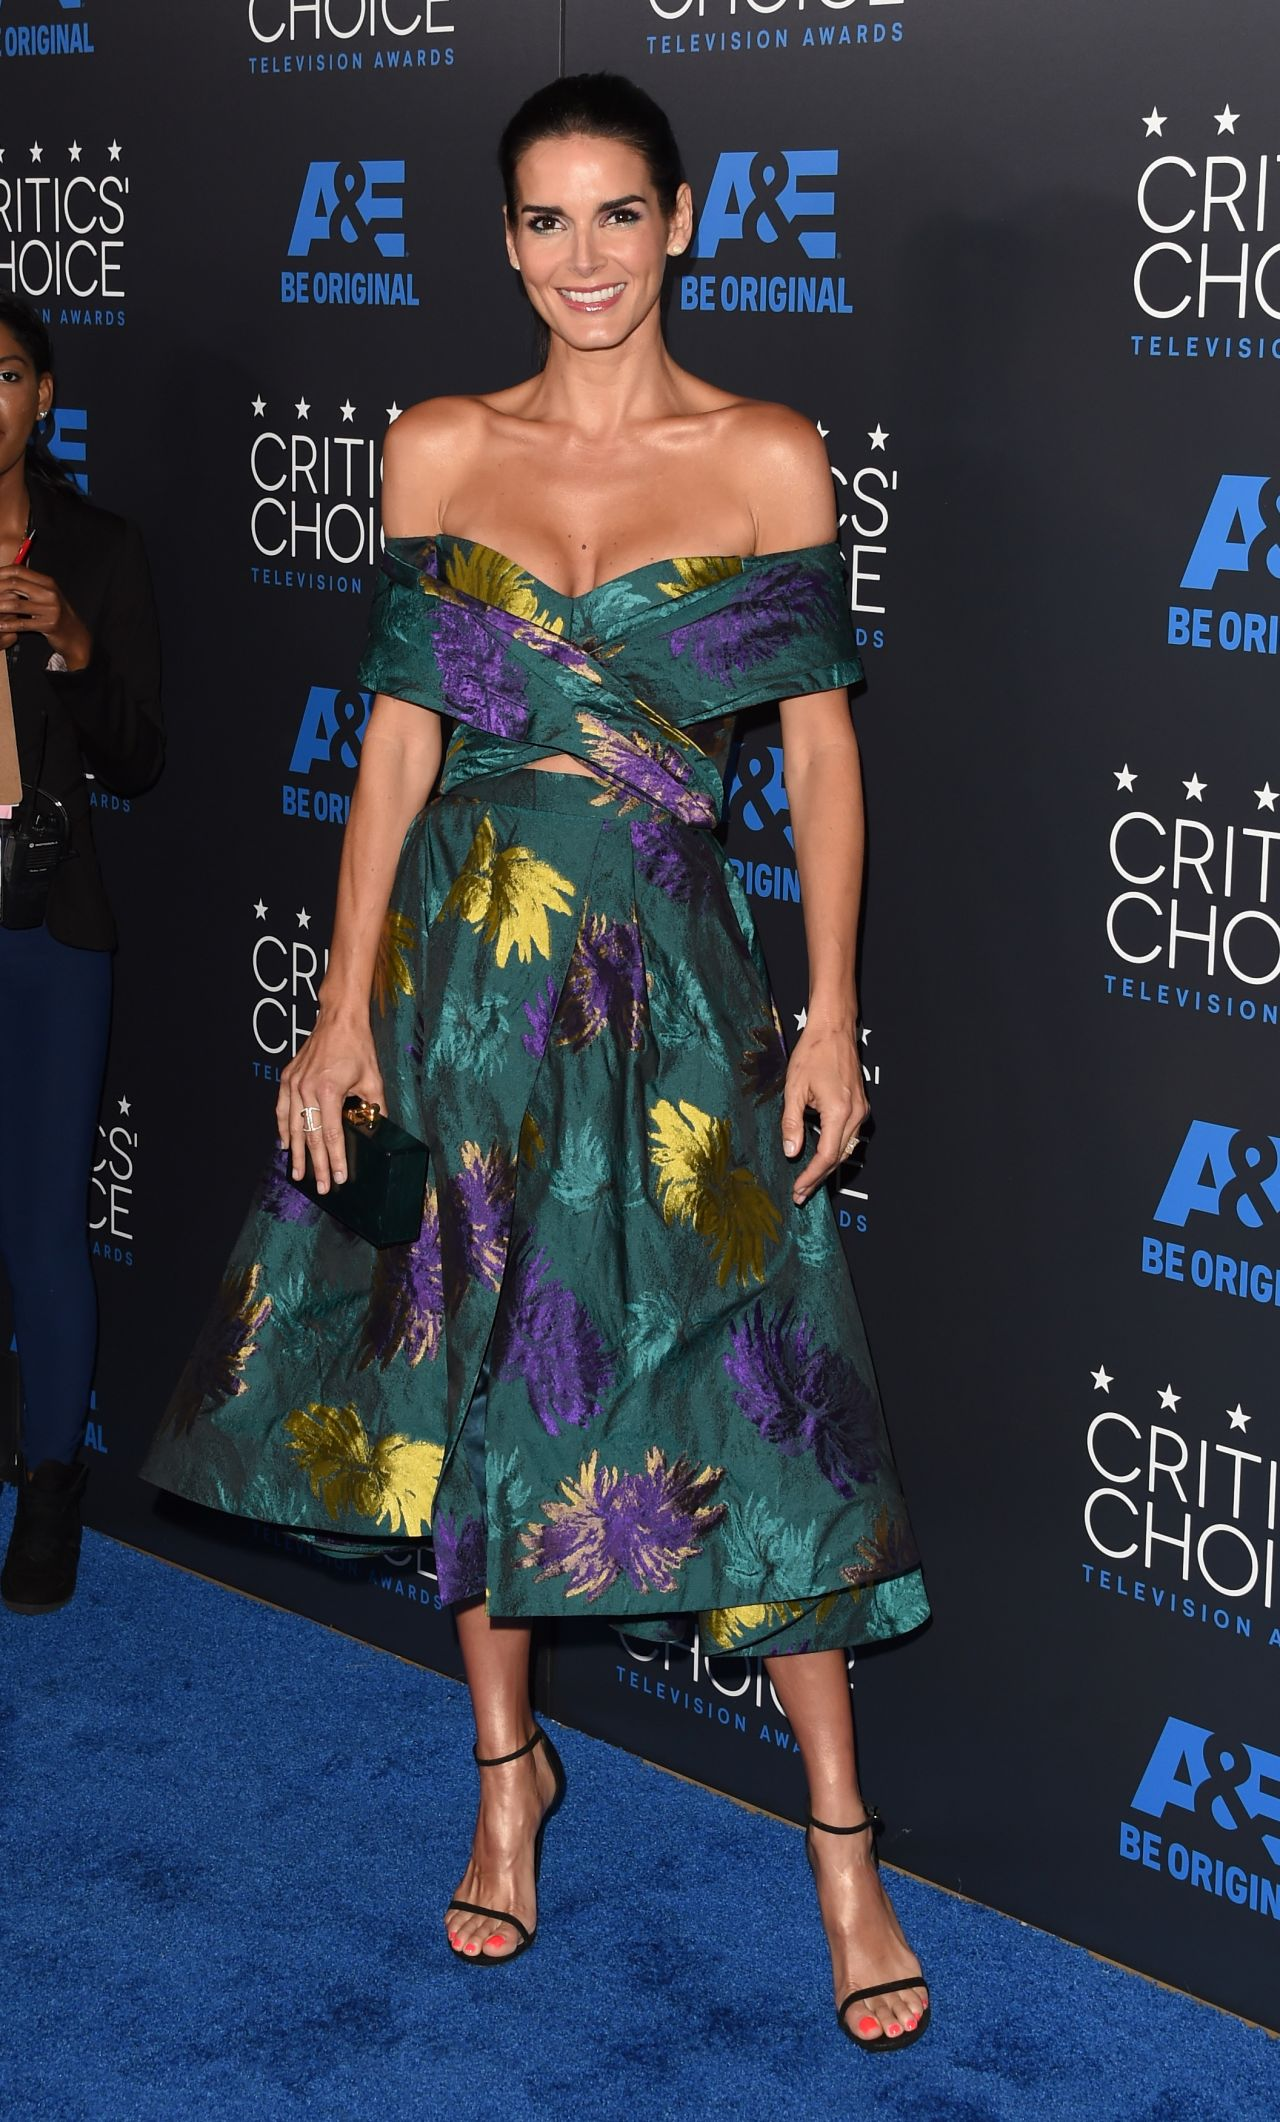 angie-harmon-2015-critics-choice-television-awards-in-beverly-hills_6